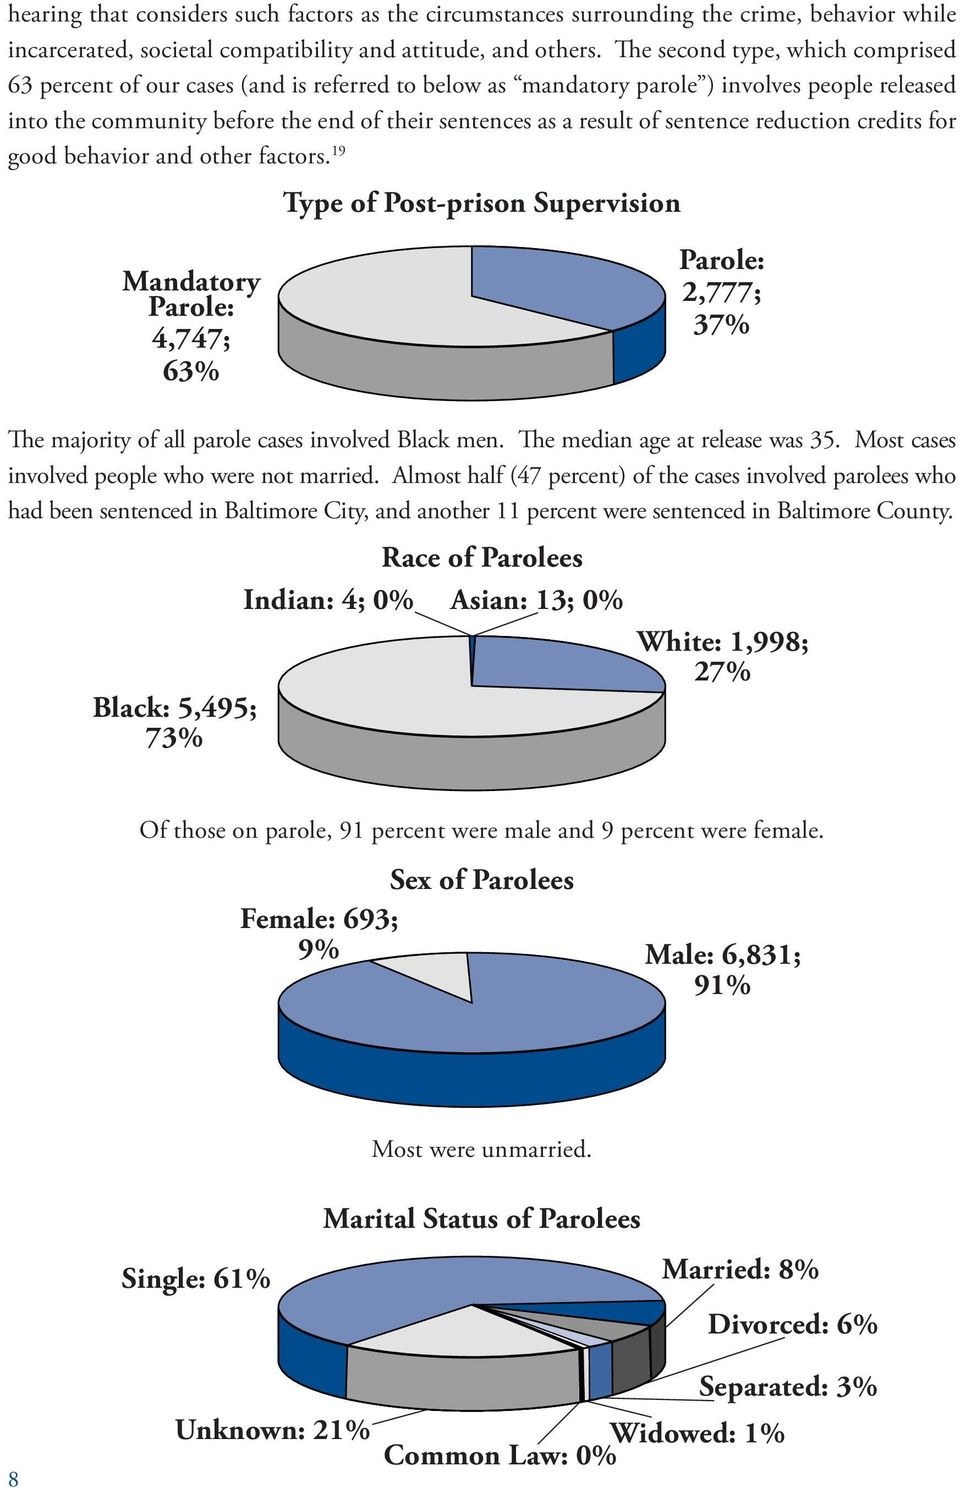 sentence reduction credits for good behavior and other factors. 19 Type of Post-prison Supervision Mandatory Parole: 4,747; 63% Parole: 2,777; 37% The majority of all parole cases involved Black men.